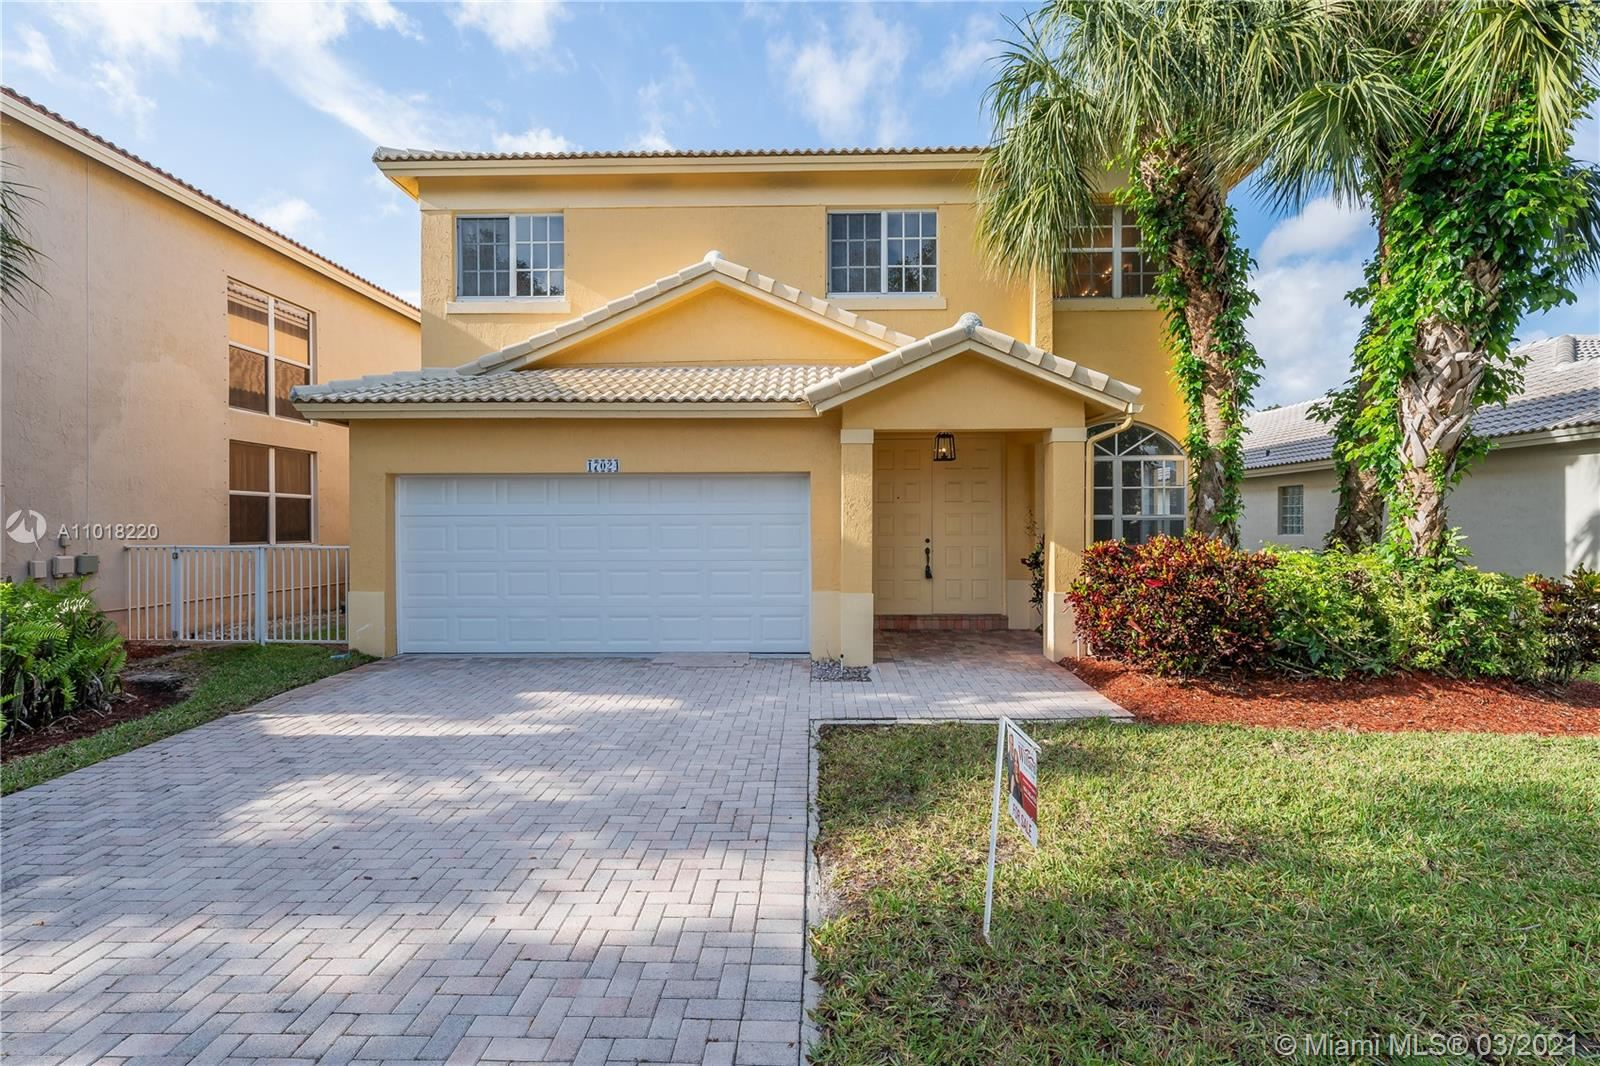 17024 NW 20th St, Pembroke Pines, FL 33028 - #: A11018220